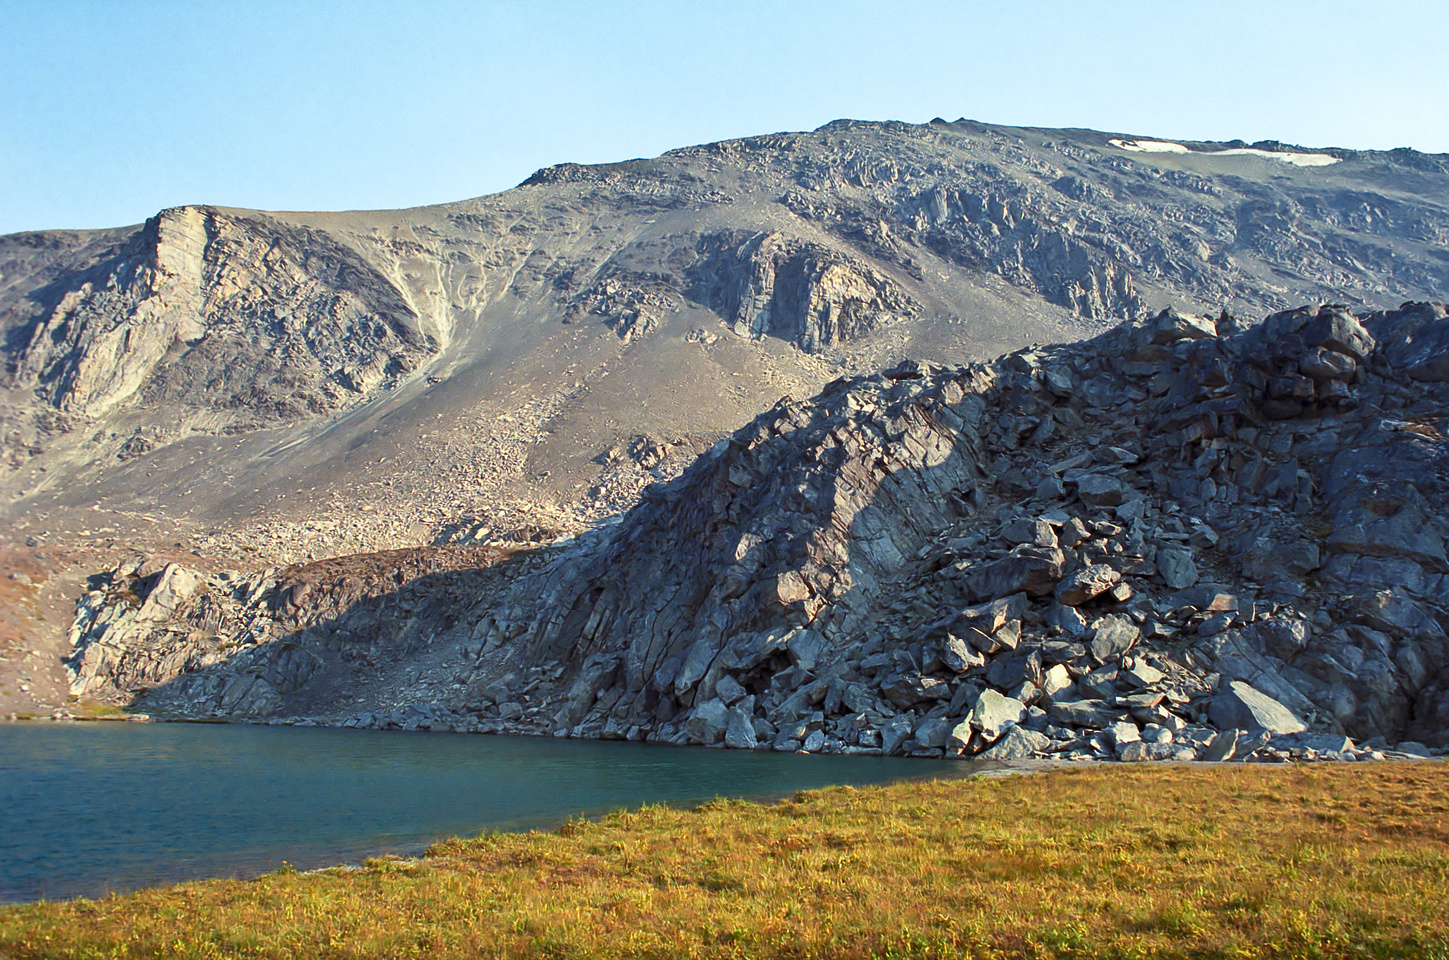 A refreshing tarn that we took a dip in on the way back down from Antler Ridge.